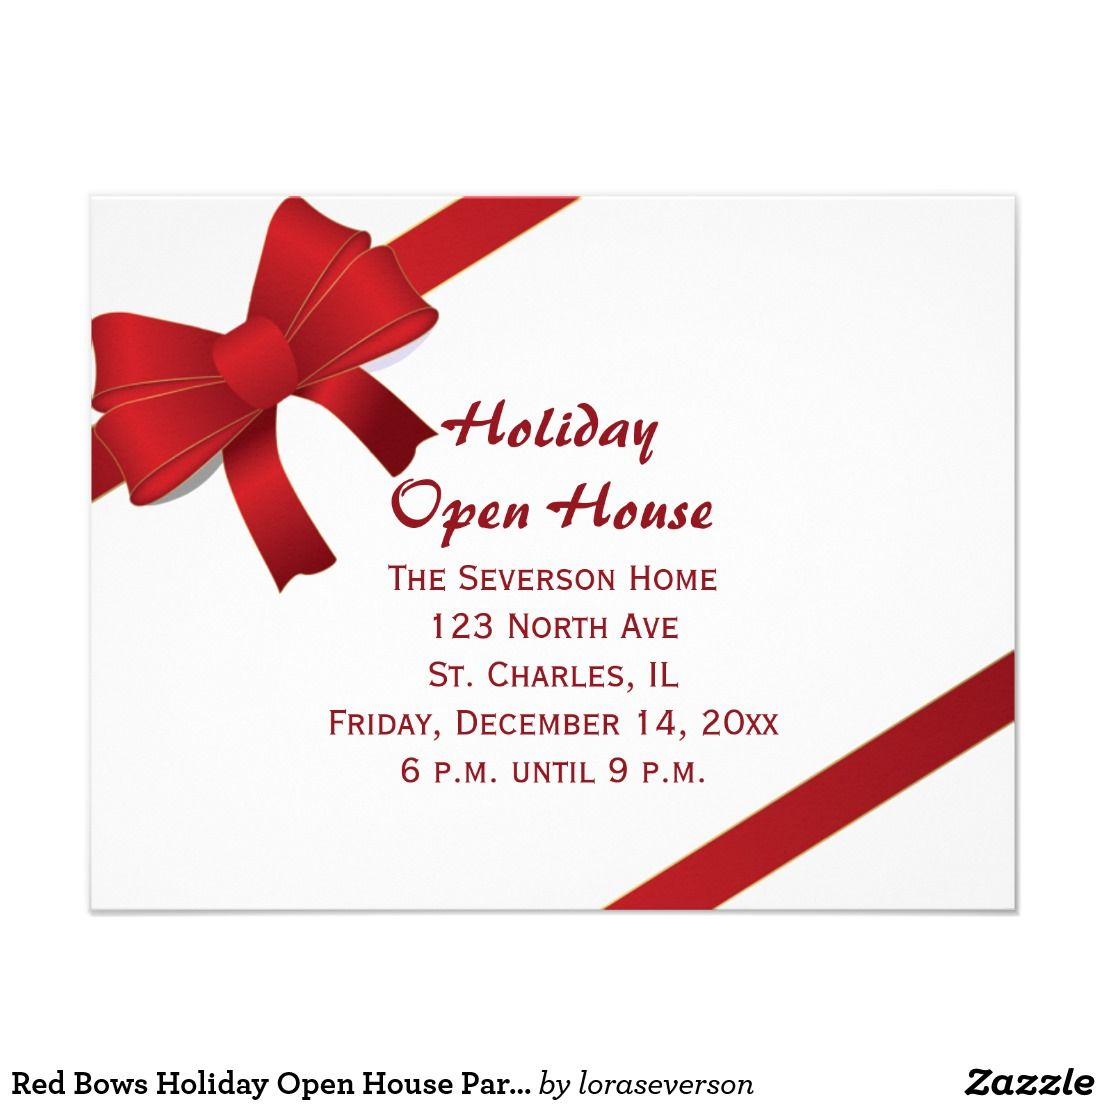 Red Bows Holiday Open House Party Invitation Card Invite guests to a ...